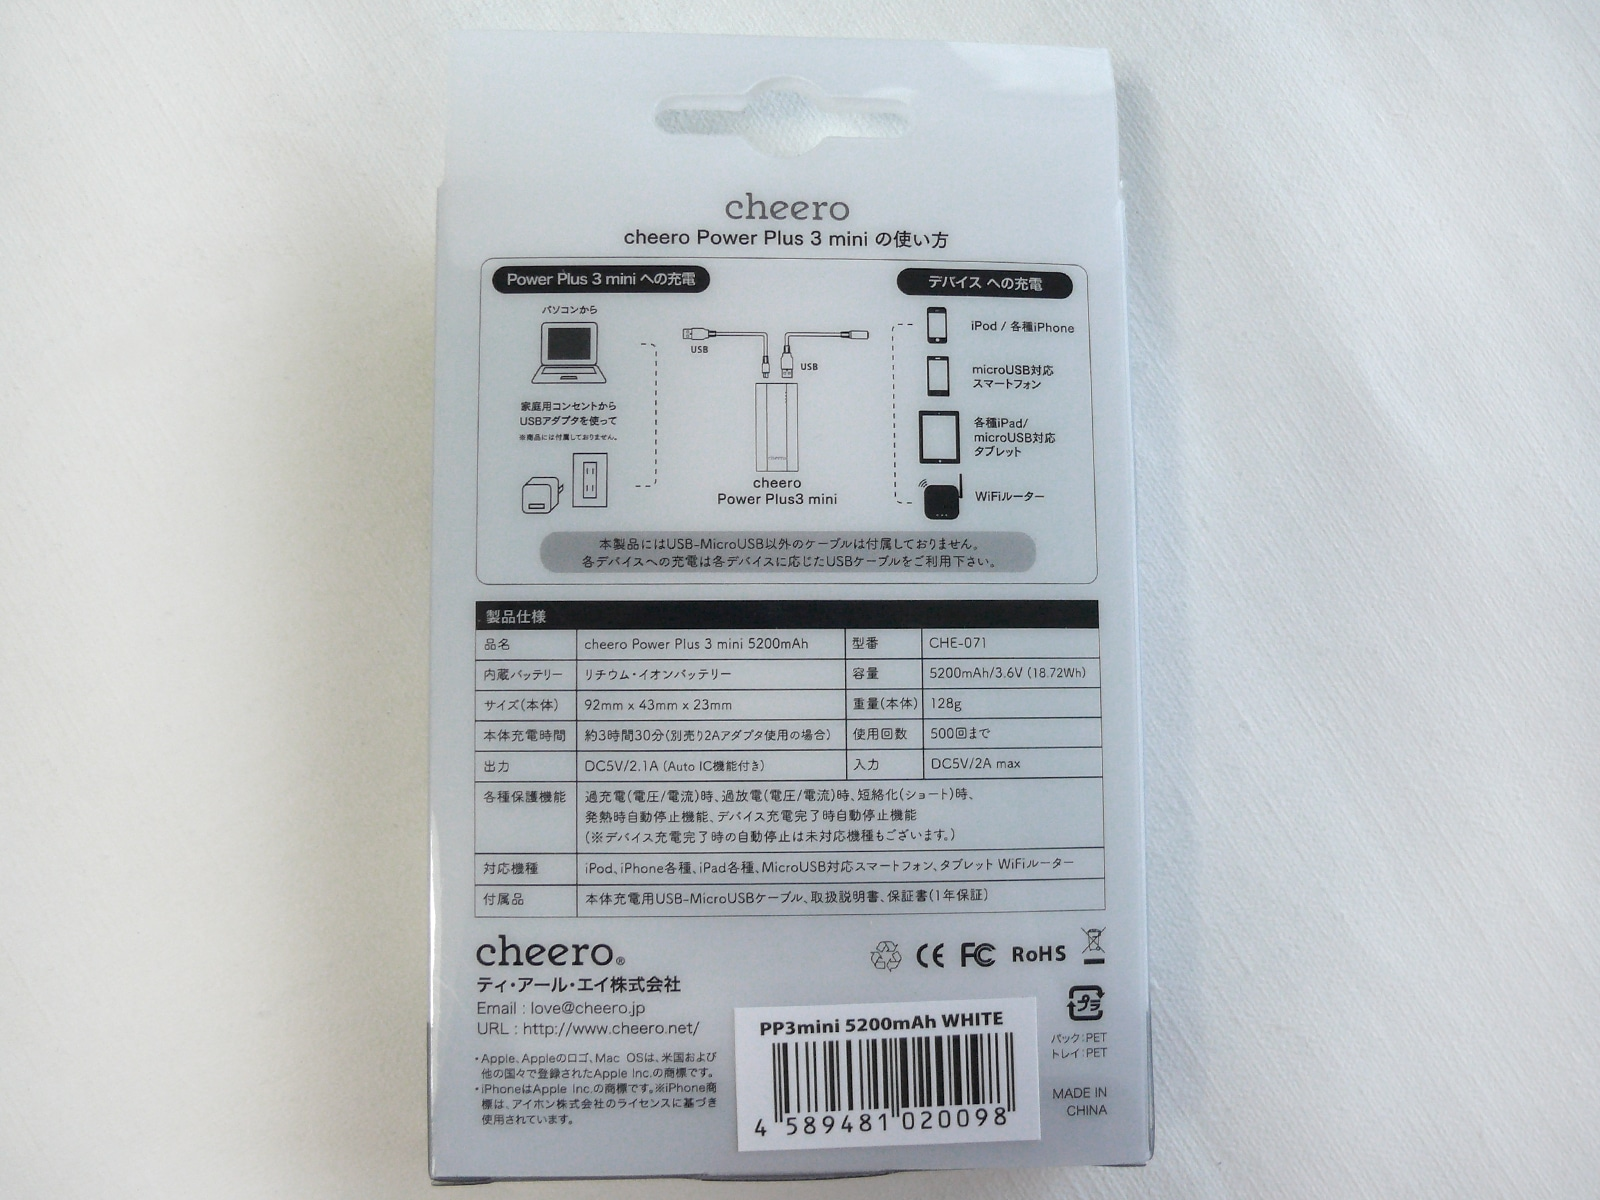 cheero Power Plus 3 mini 5200mAh 開封 外装裏